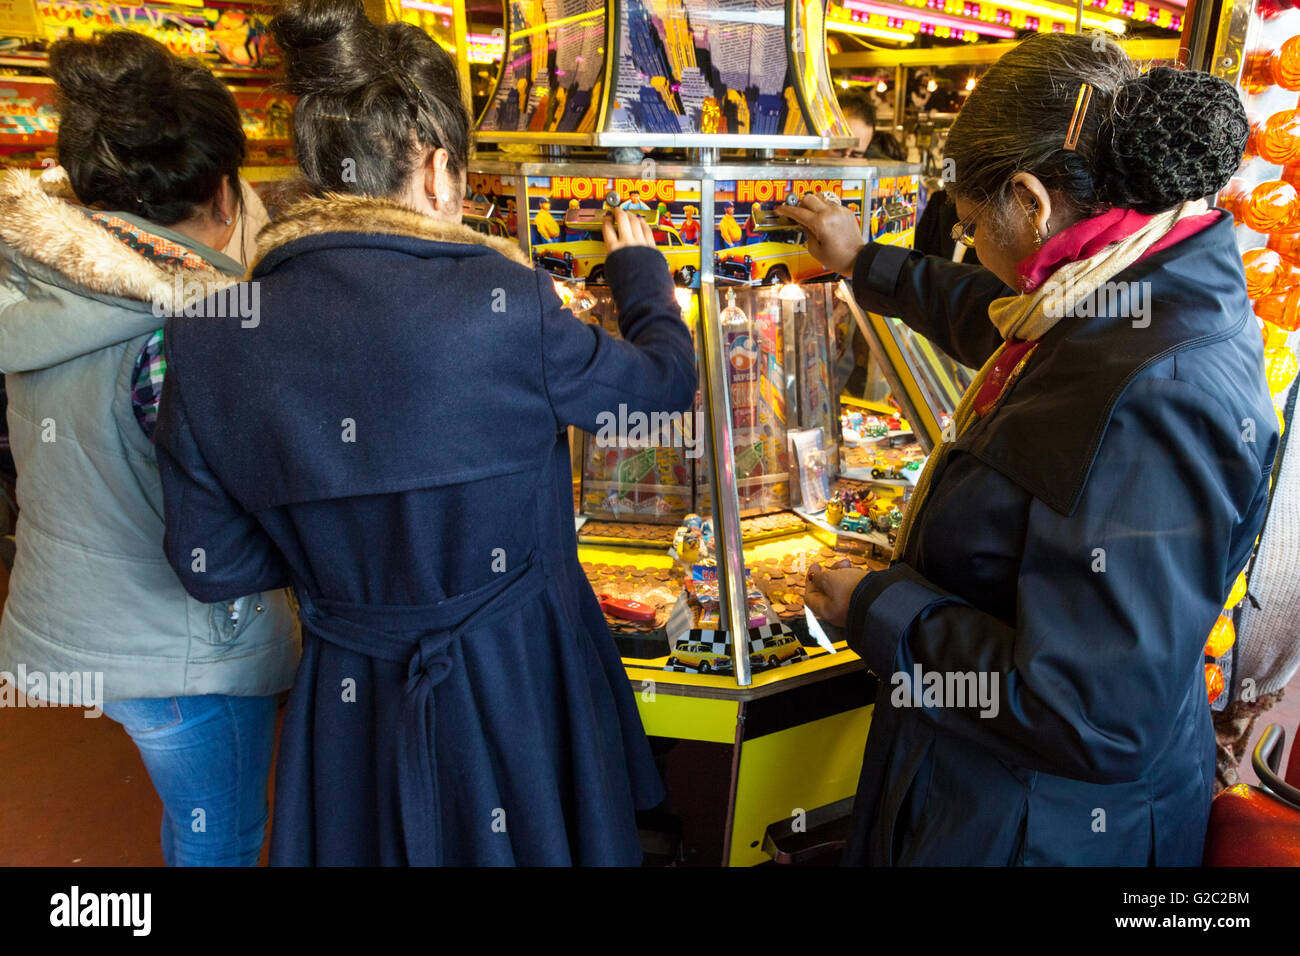 People playing a slot machine in an amusement arcade at Goose Fair, Nottingham, England, UK - Stock Image